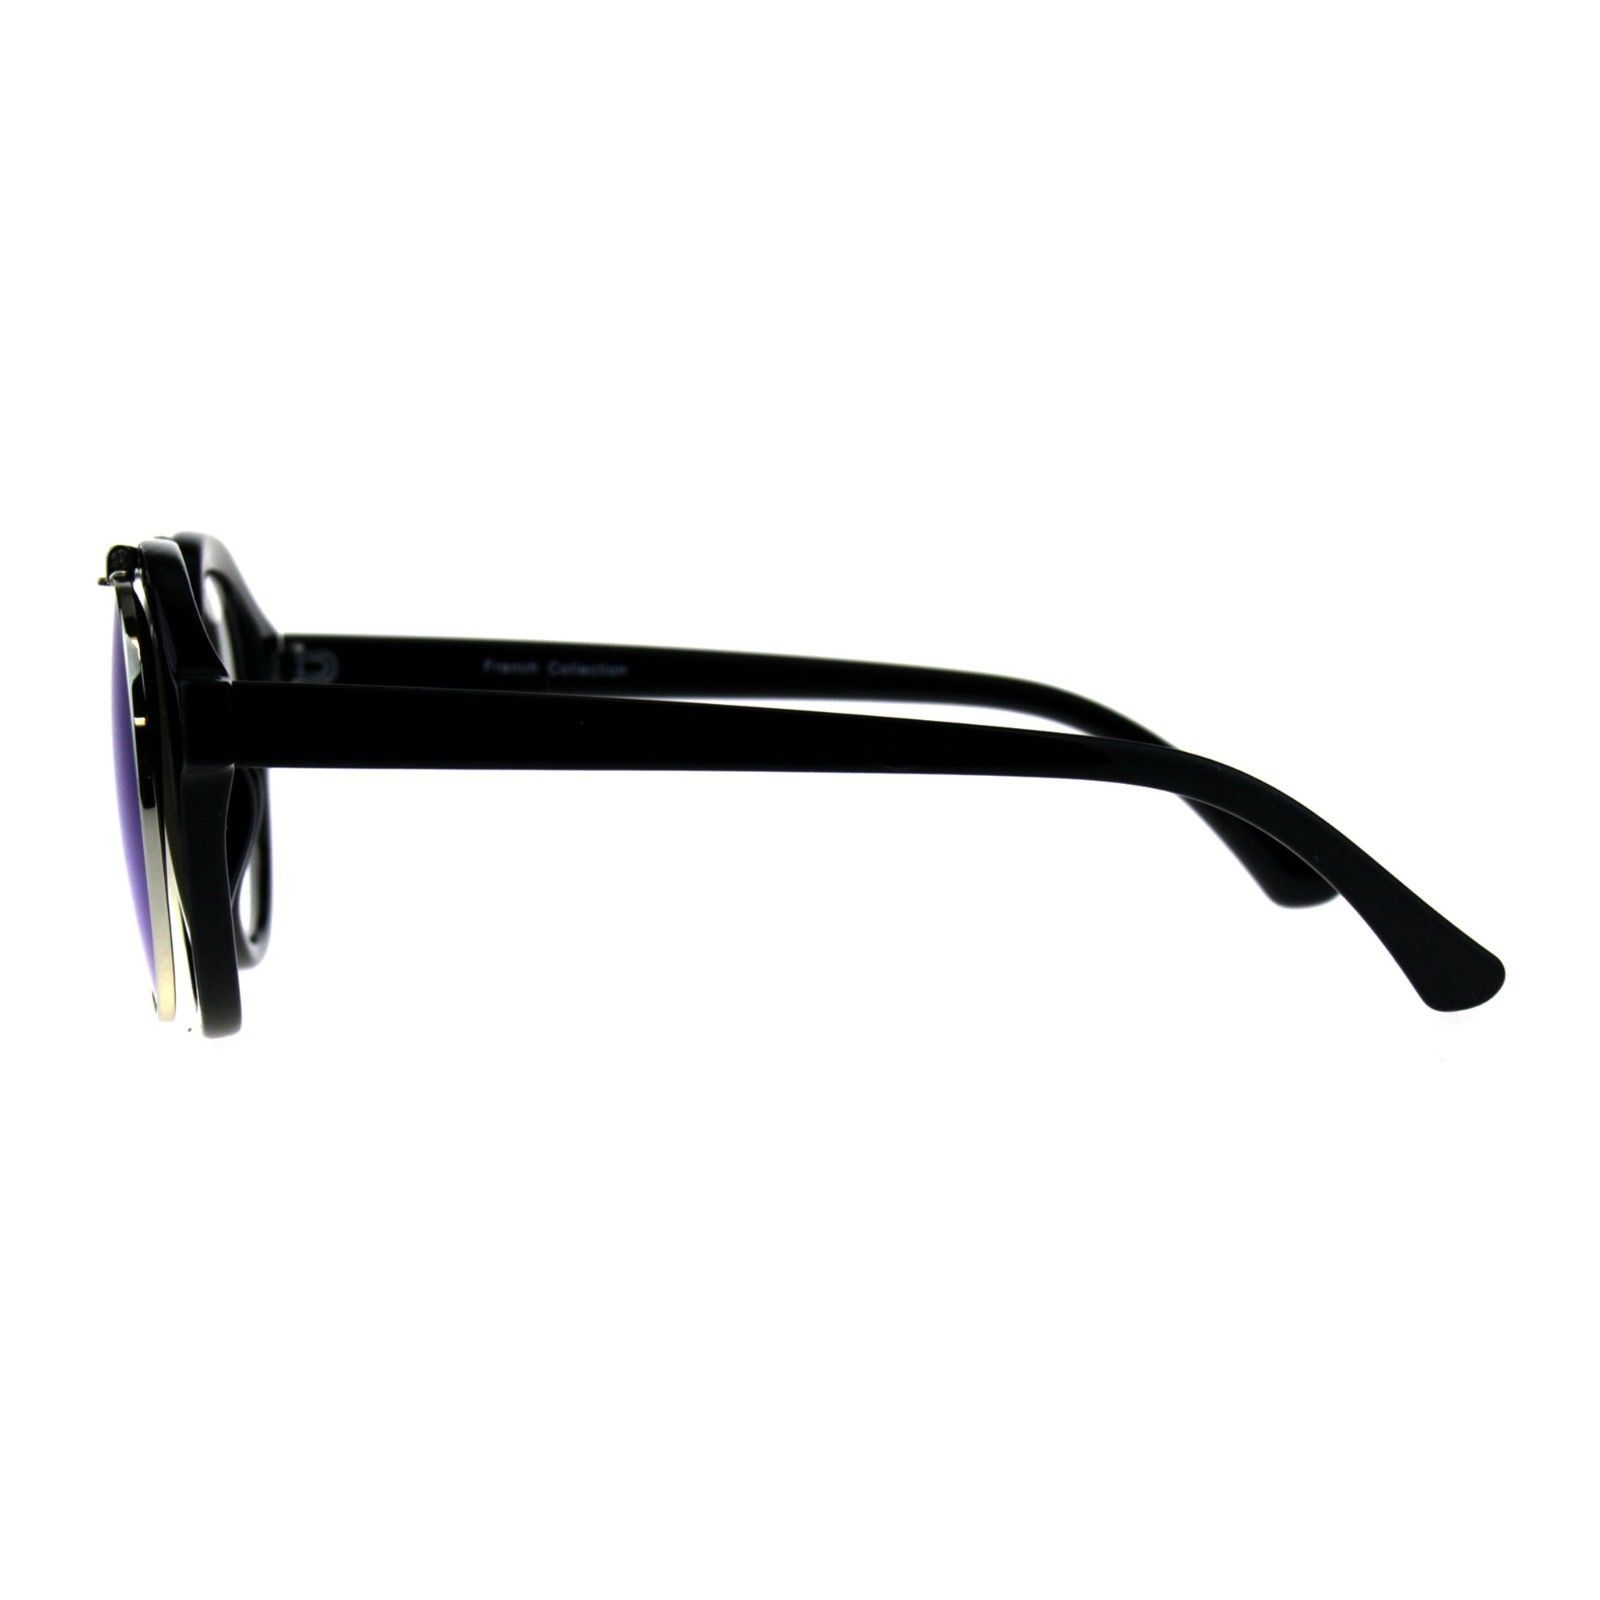 Flip Up Sunglasses Clear Lens Glasses Round Retro Unisex Fashion Shades